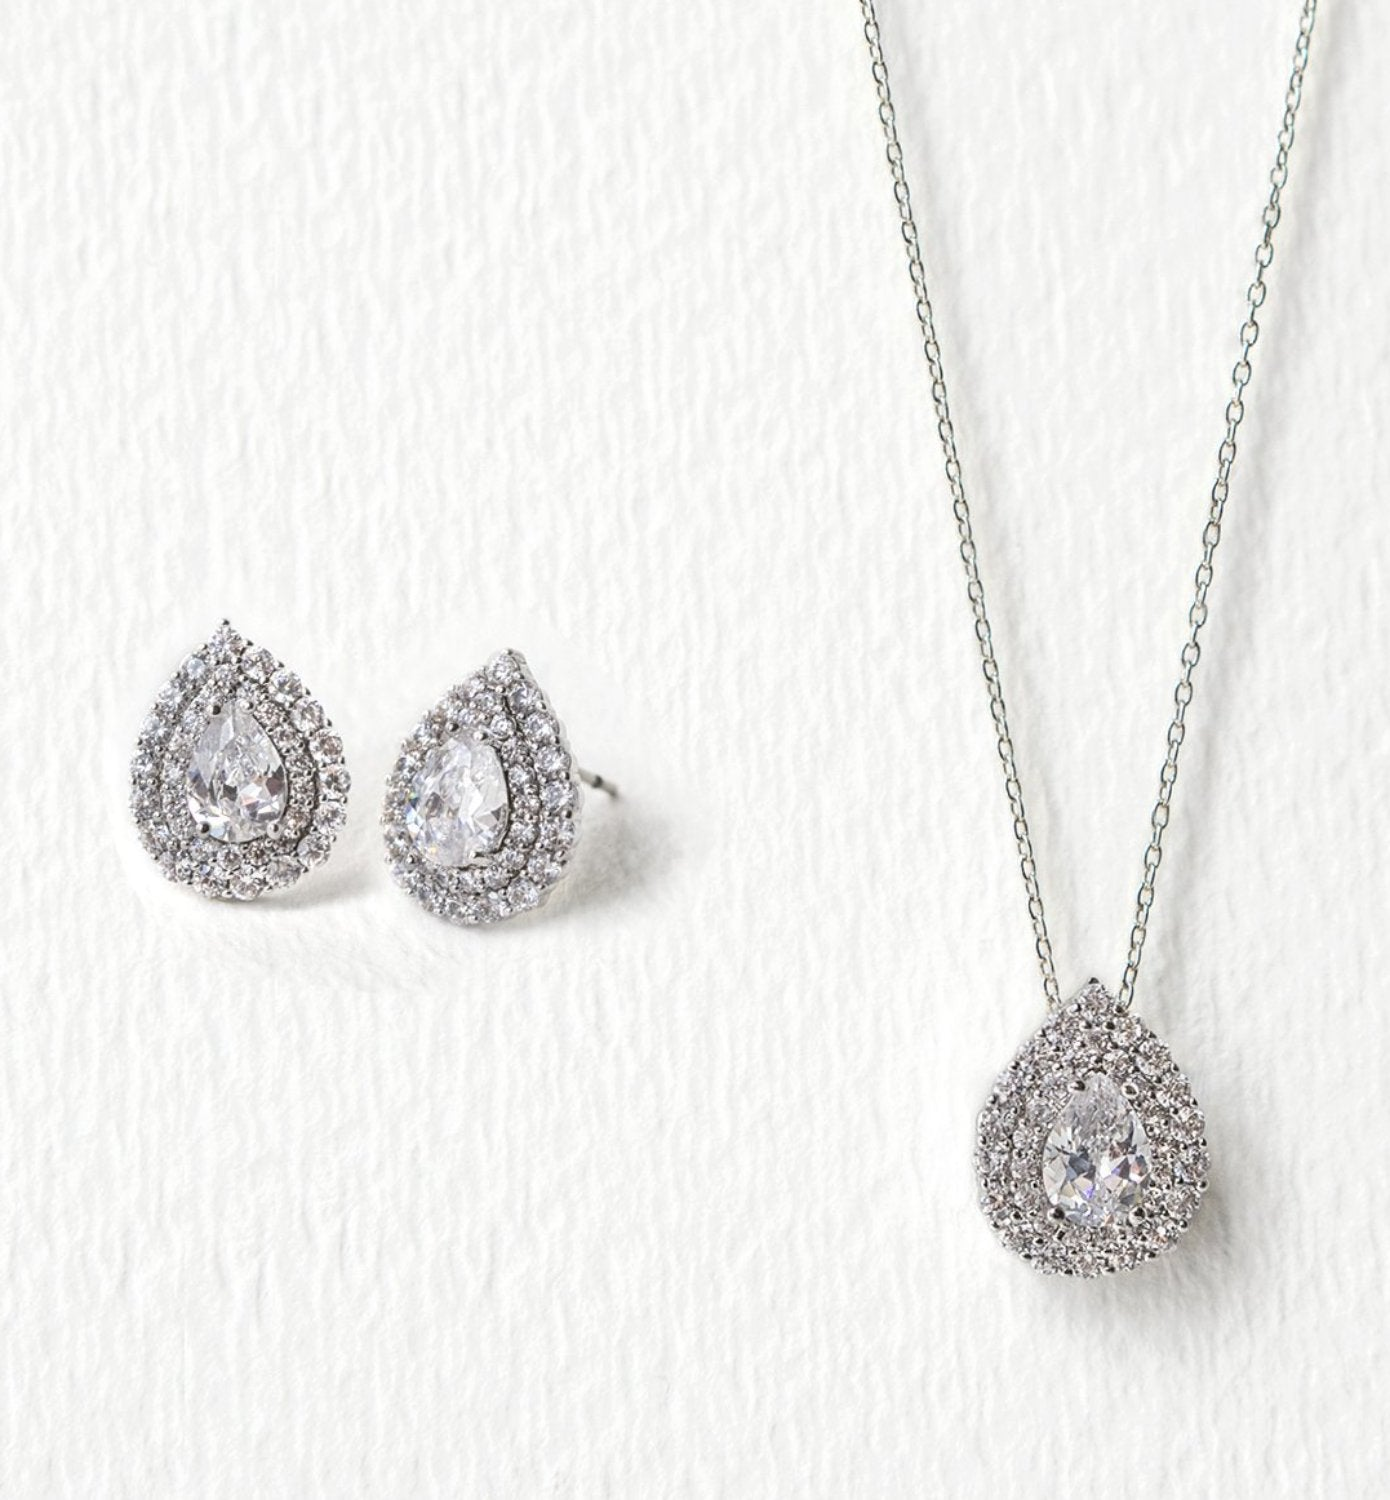 Deco Teardrop Jewelry Set - Amy O. Bridal